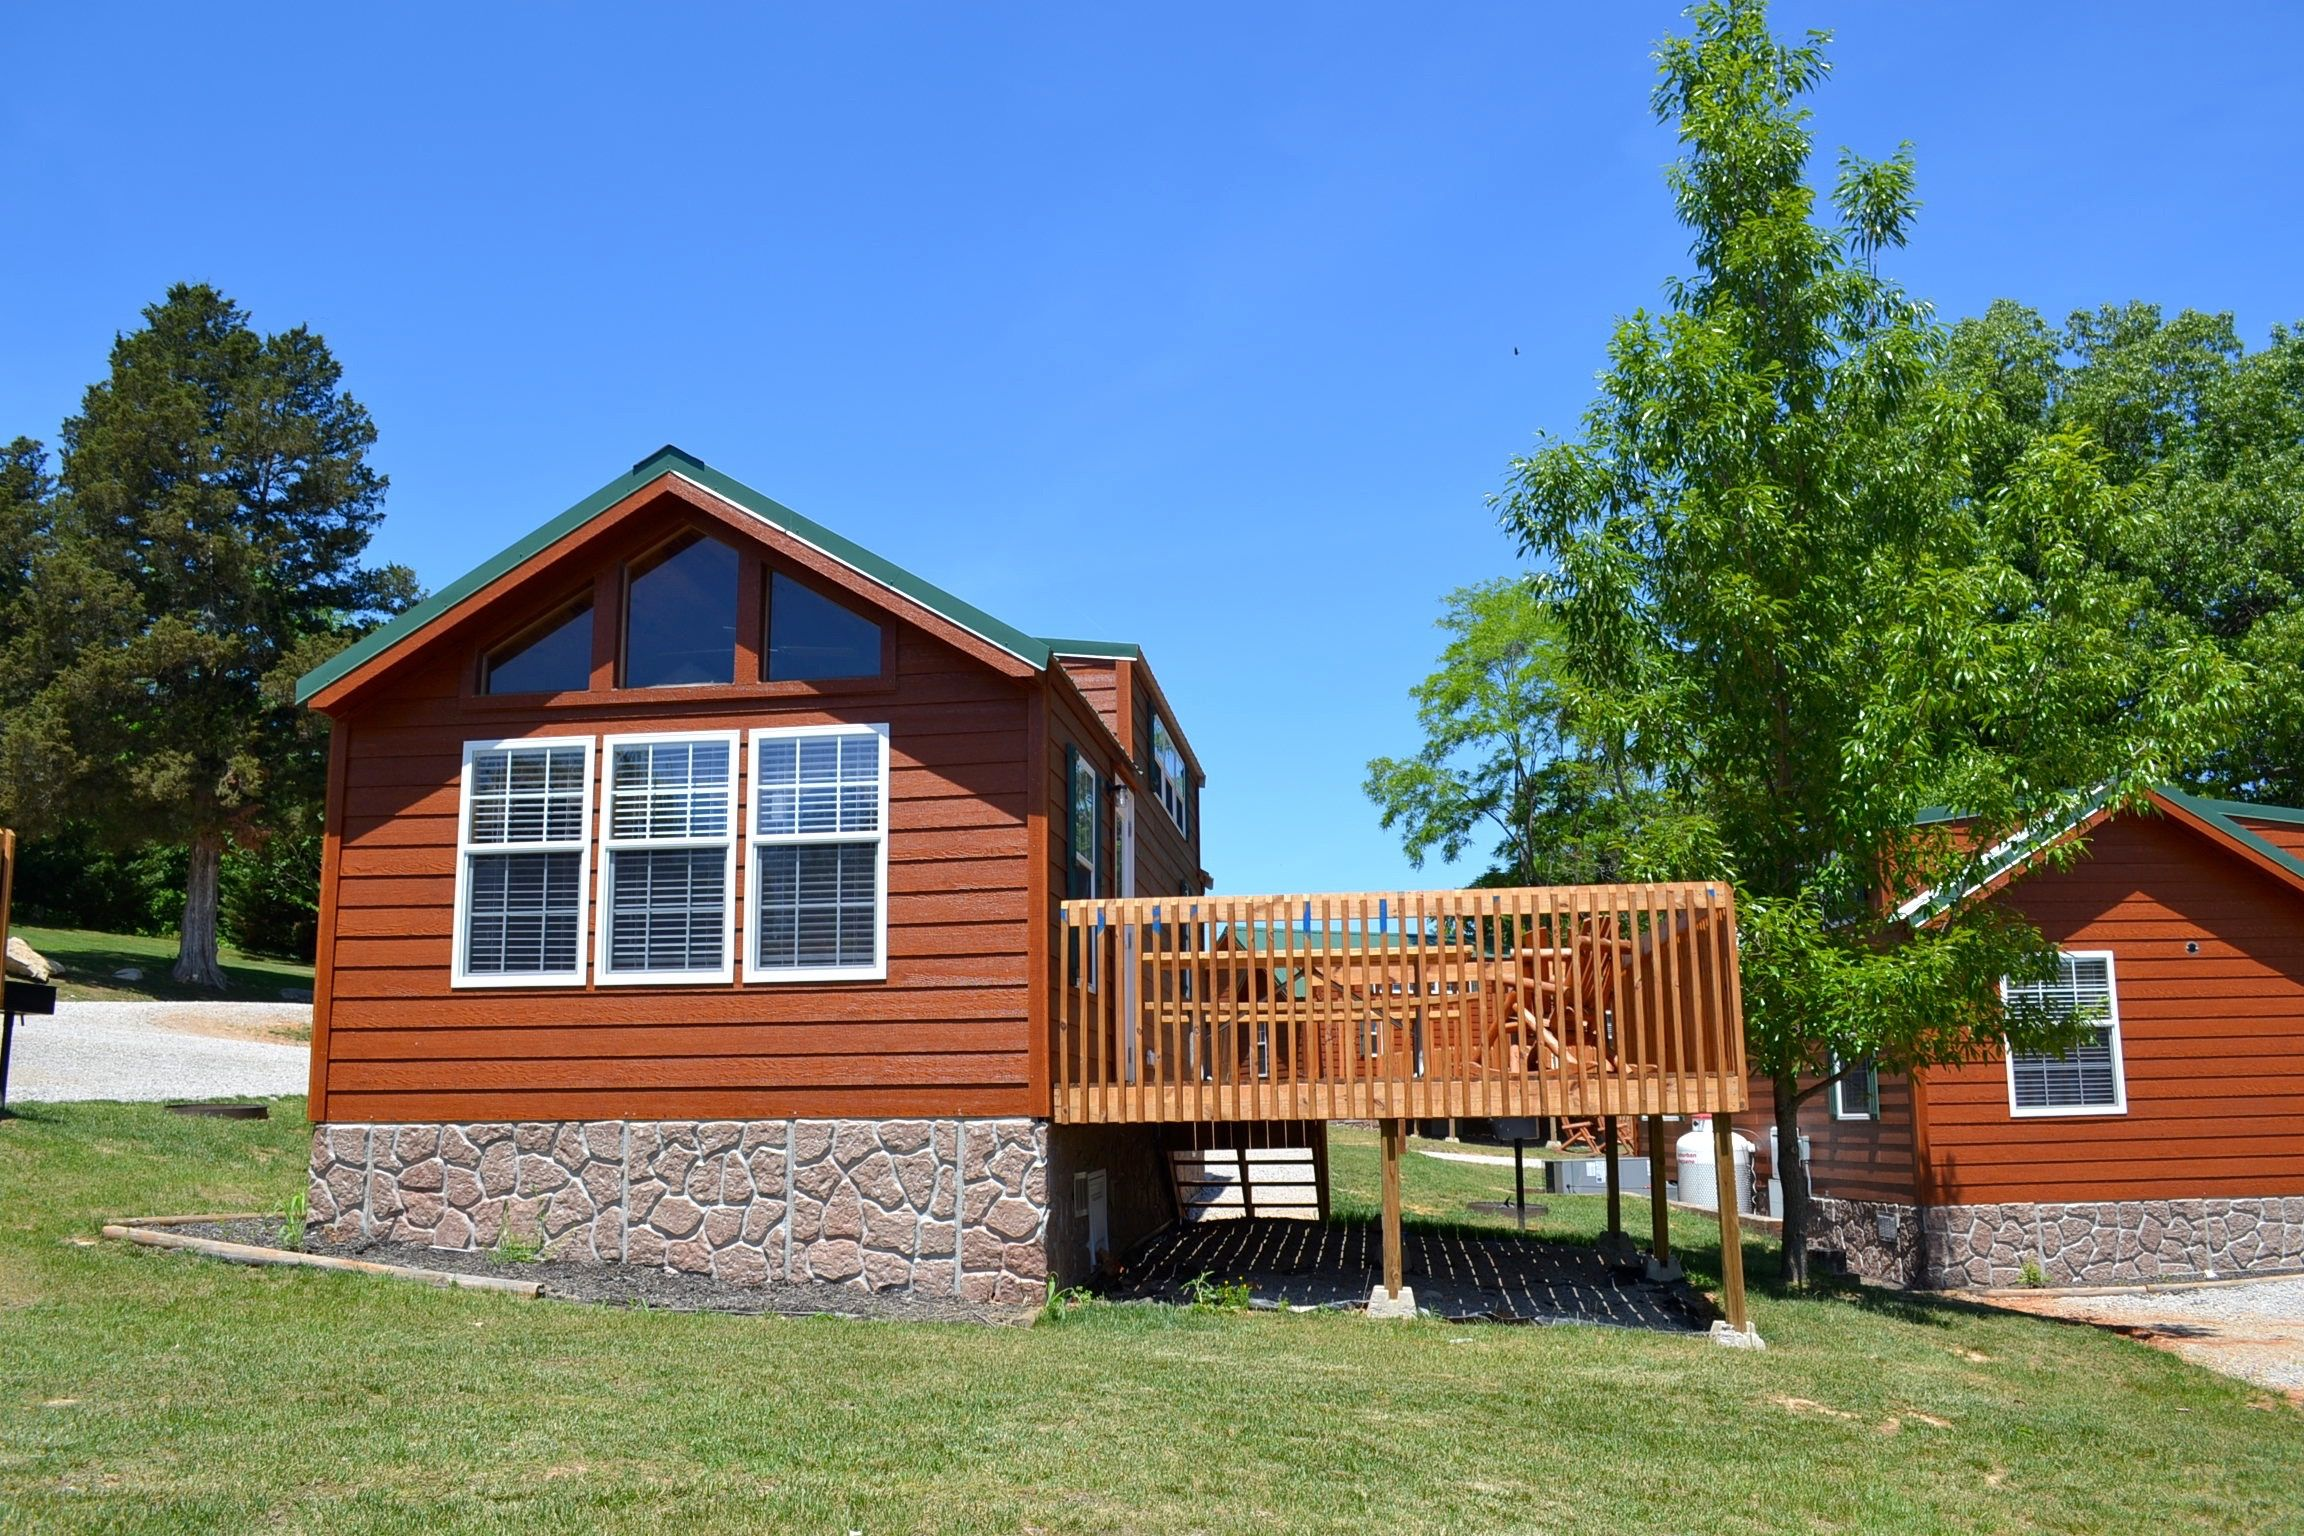 ky information russell reconnect springs modern log world vacations photo of visitor campground family koa on cabins cabin rental site with kentucky the in disconnect cumberland a lake official